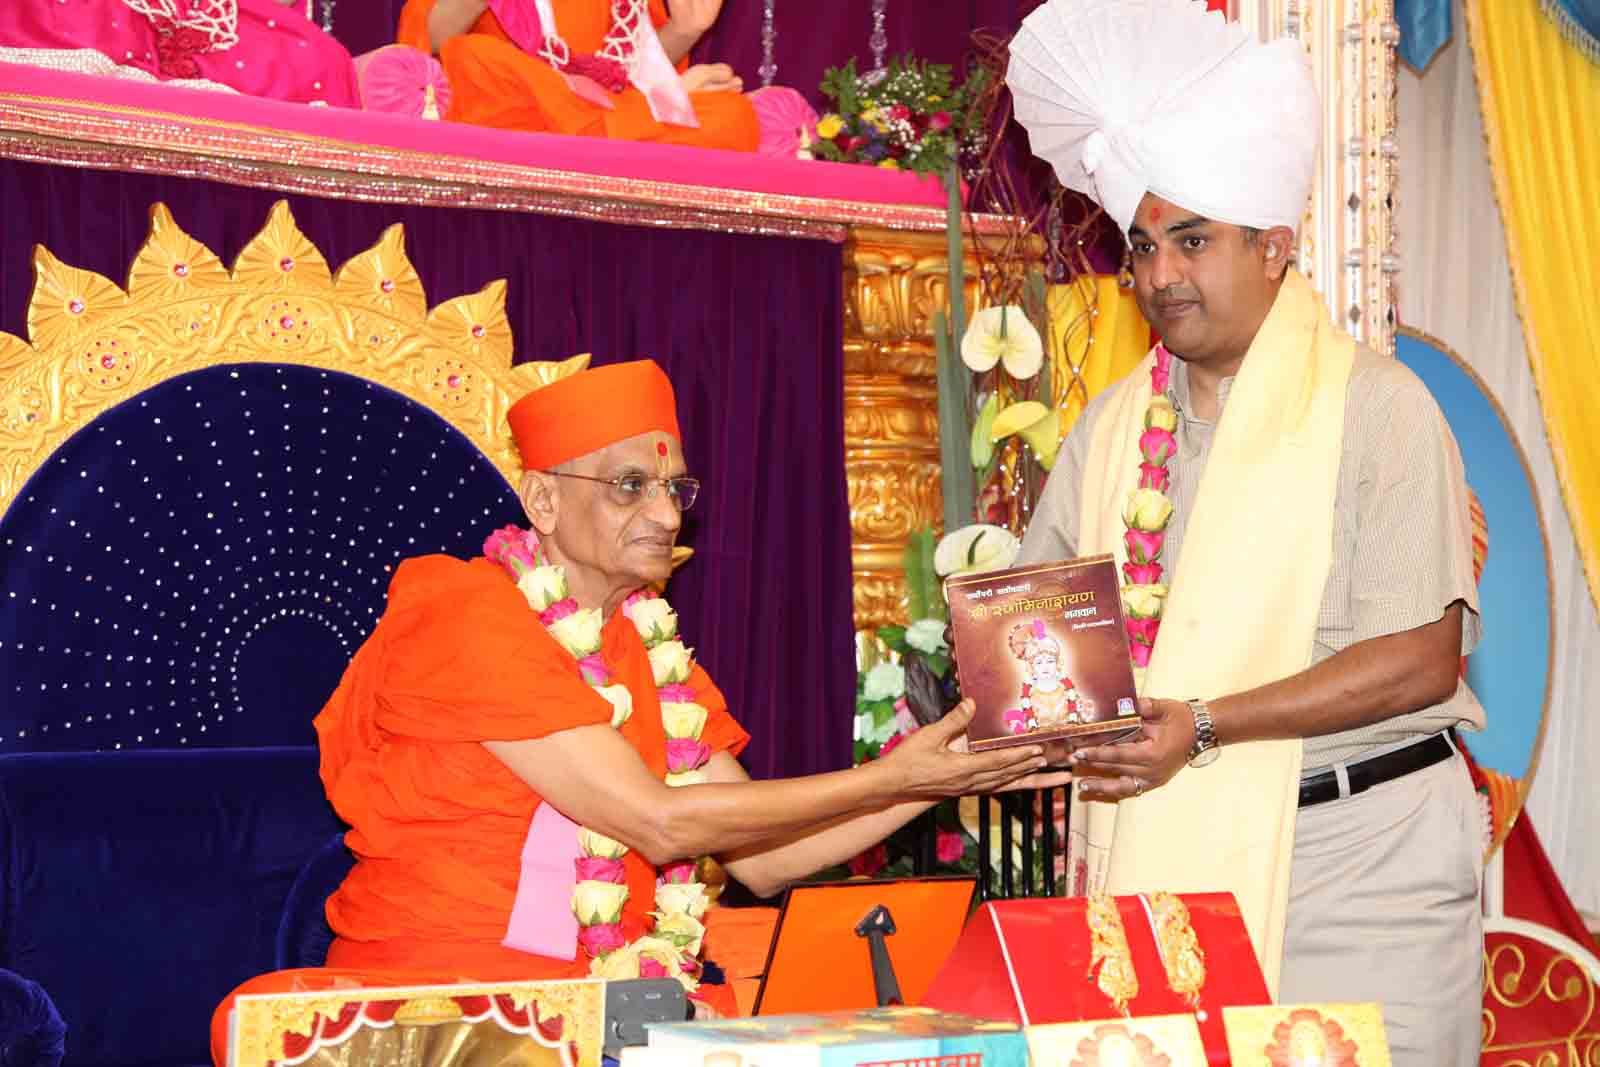 The guest receives a set of the Sarvopari Swaminarayan serial CD's from Acharya Swamishree